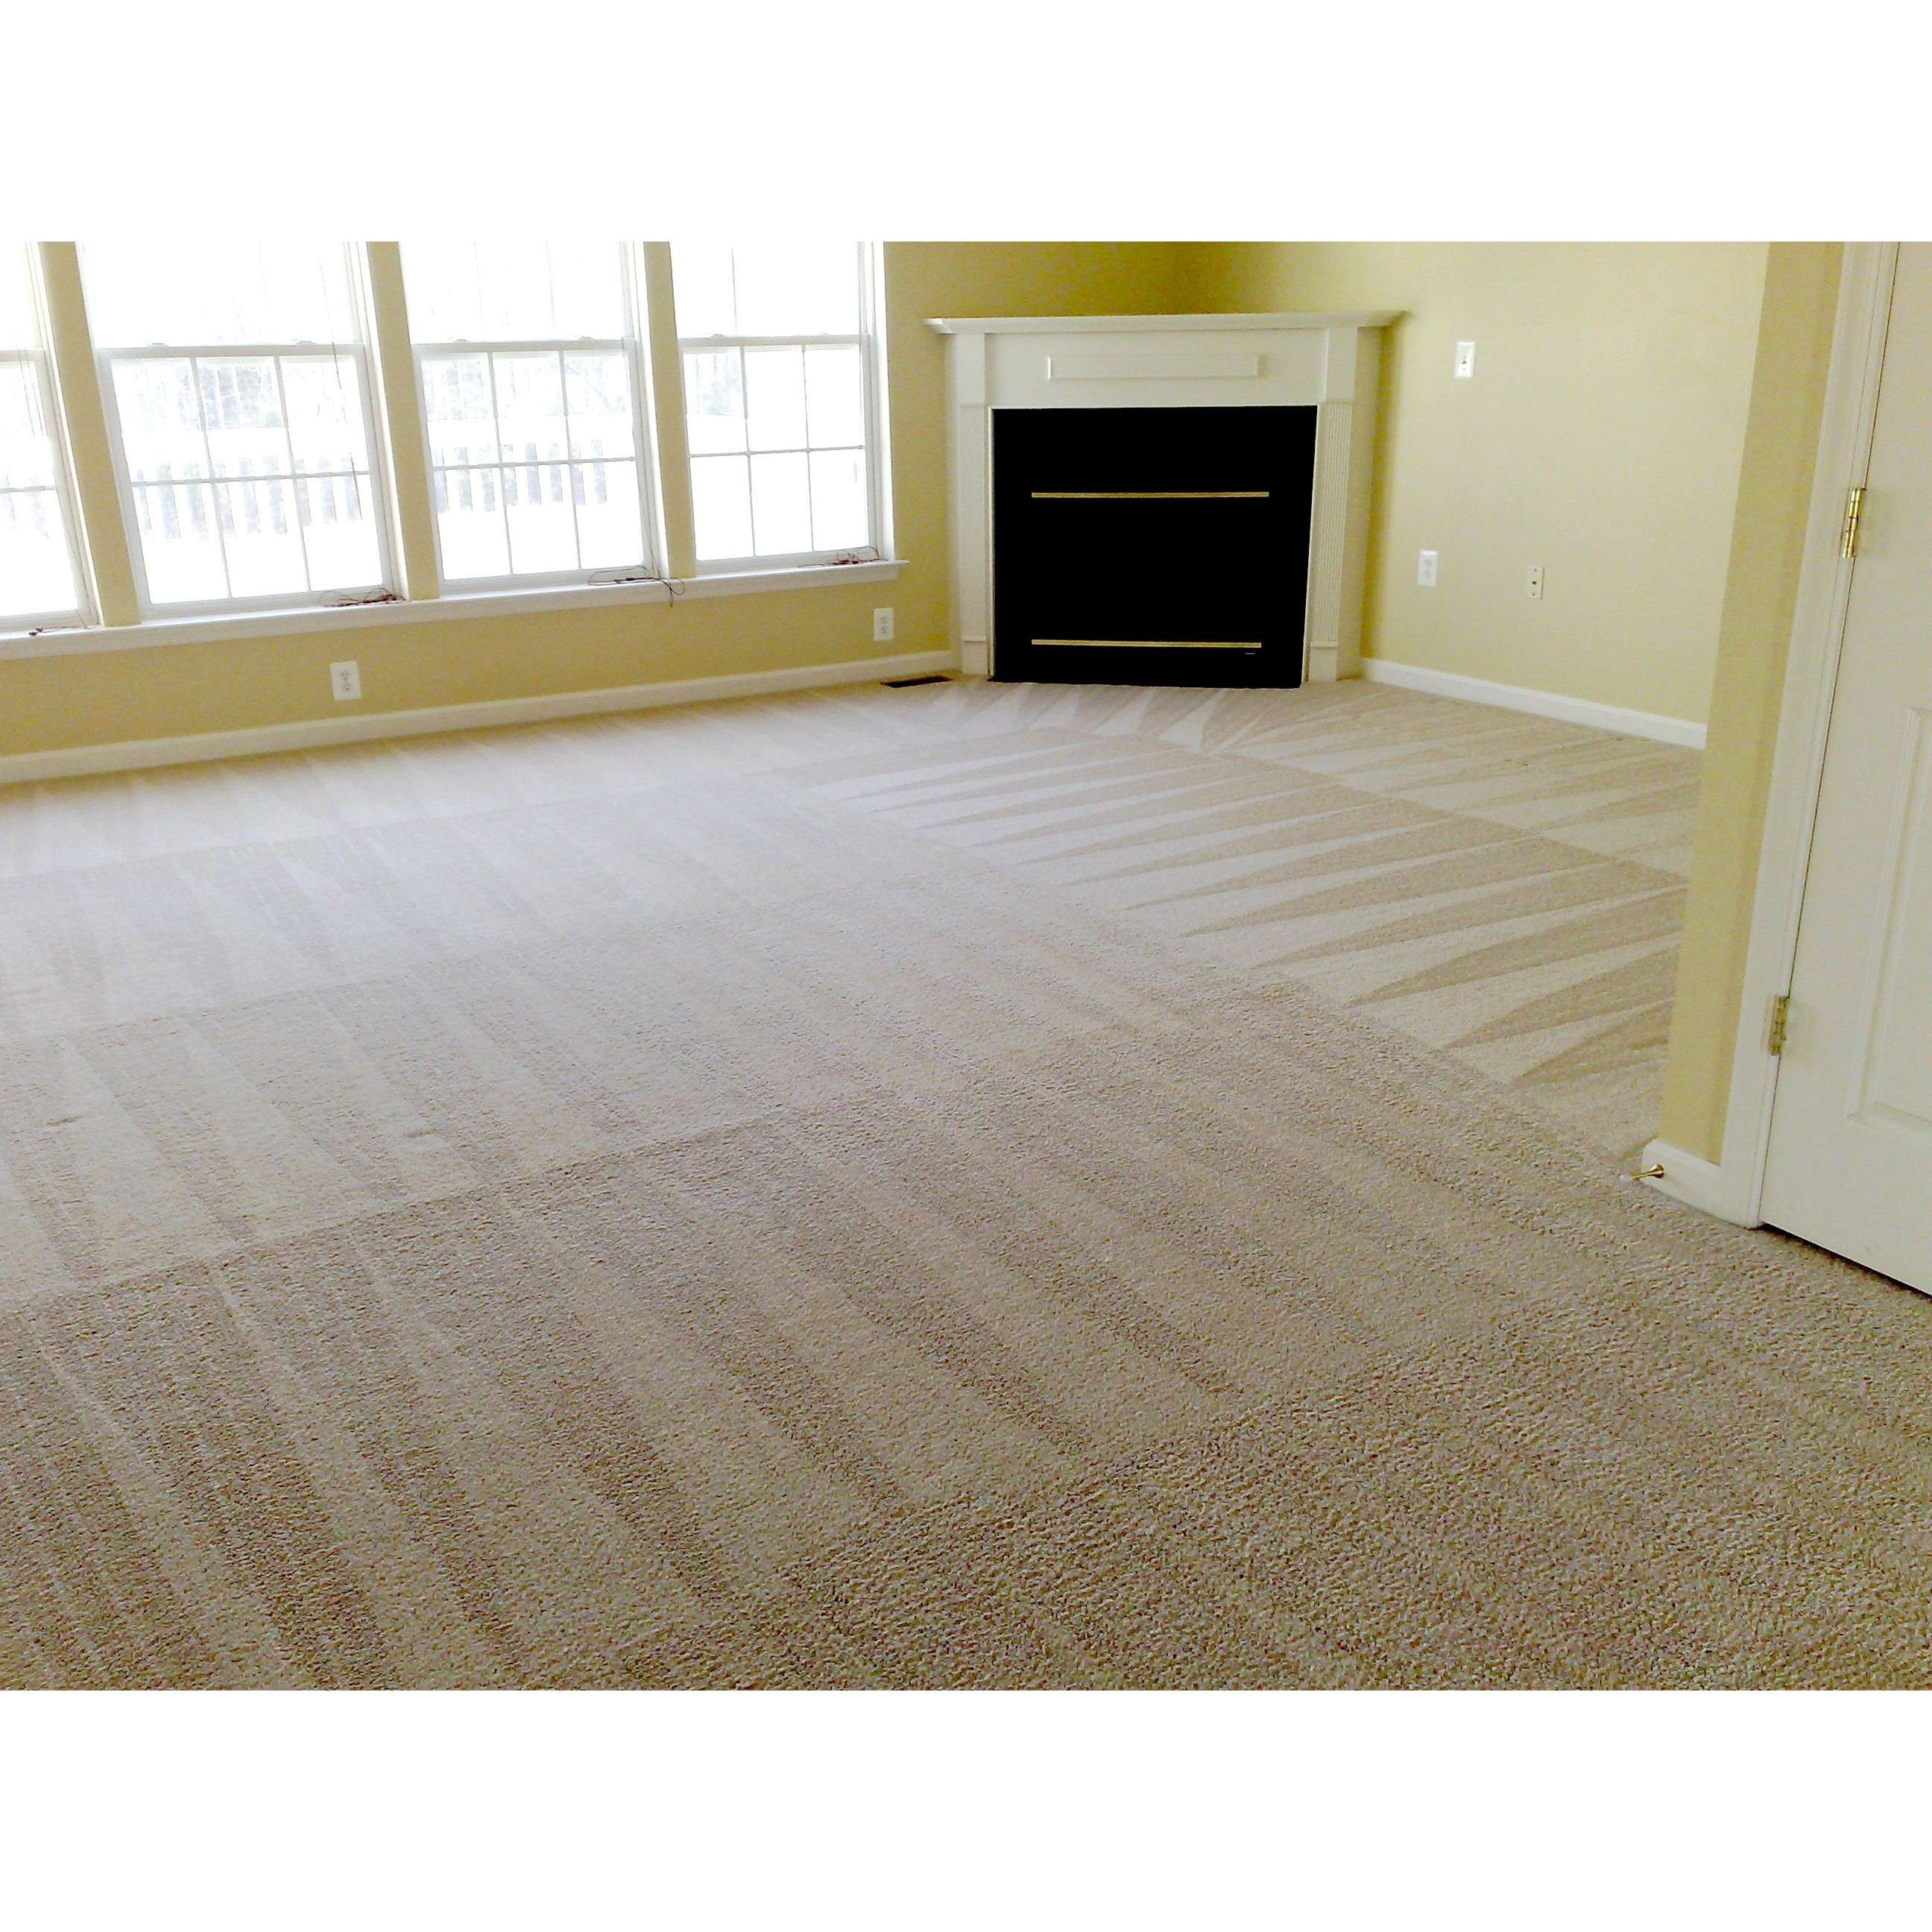 Turbo Carpet & Upholstery Cleaning In Whittier, Ca 90605. Nurse Practitioner Opportunities. Orange County Reverse Mortgage. Michigan Graduate Programs Temeku Golf Course. How To Become A Officer In The Air Force. Top Auto Insurance Companies In Ny. Car Insurance Rates In Michigan. Incident Management Certification. Discounts On Car Insurance Bottom Braces Only